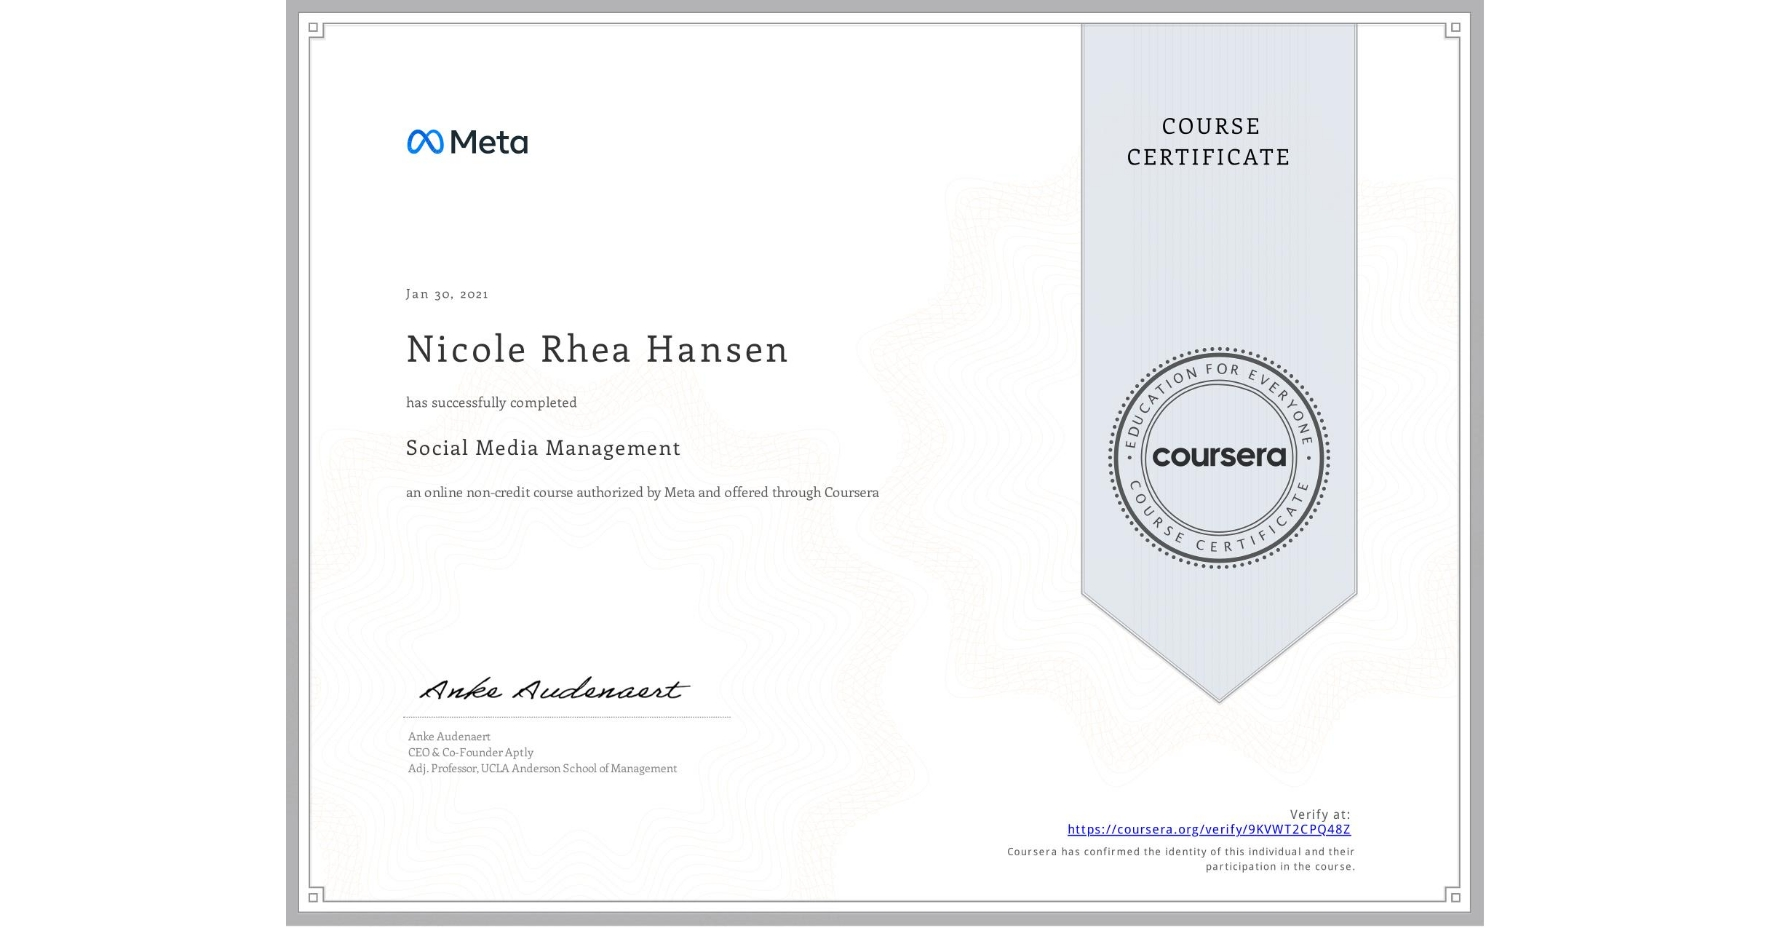 View certificate for Nicole Rhea Hansen, Social Media Management , an online non-credit course authorized by Facebook and offered through Coursera